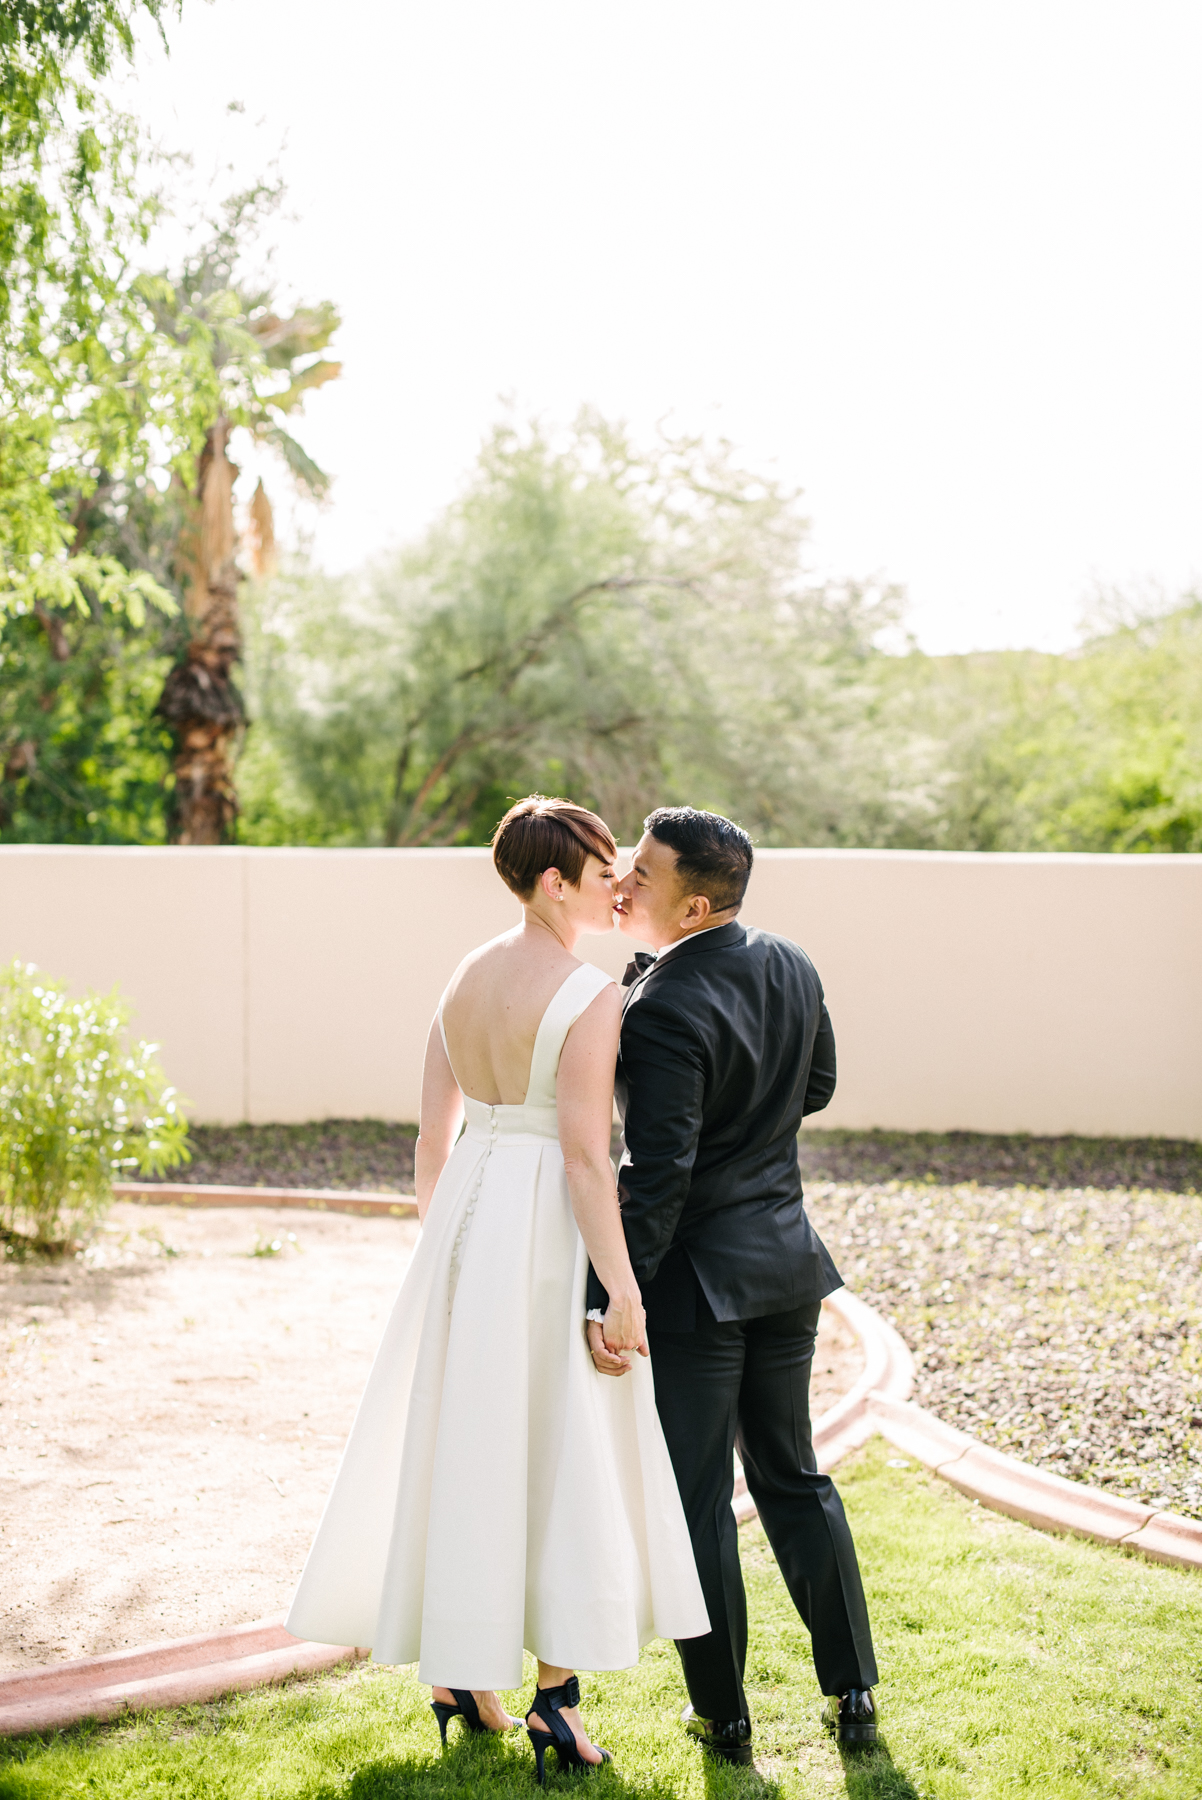 Secret Garden Event Center Wedding - Meredith Amadee Photography-51.jpg